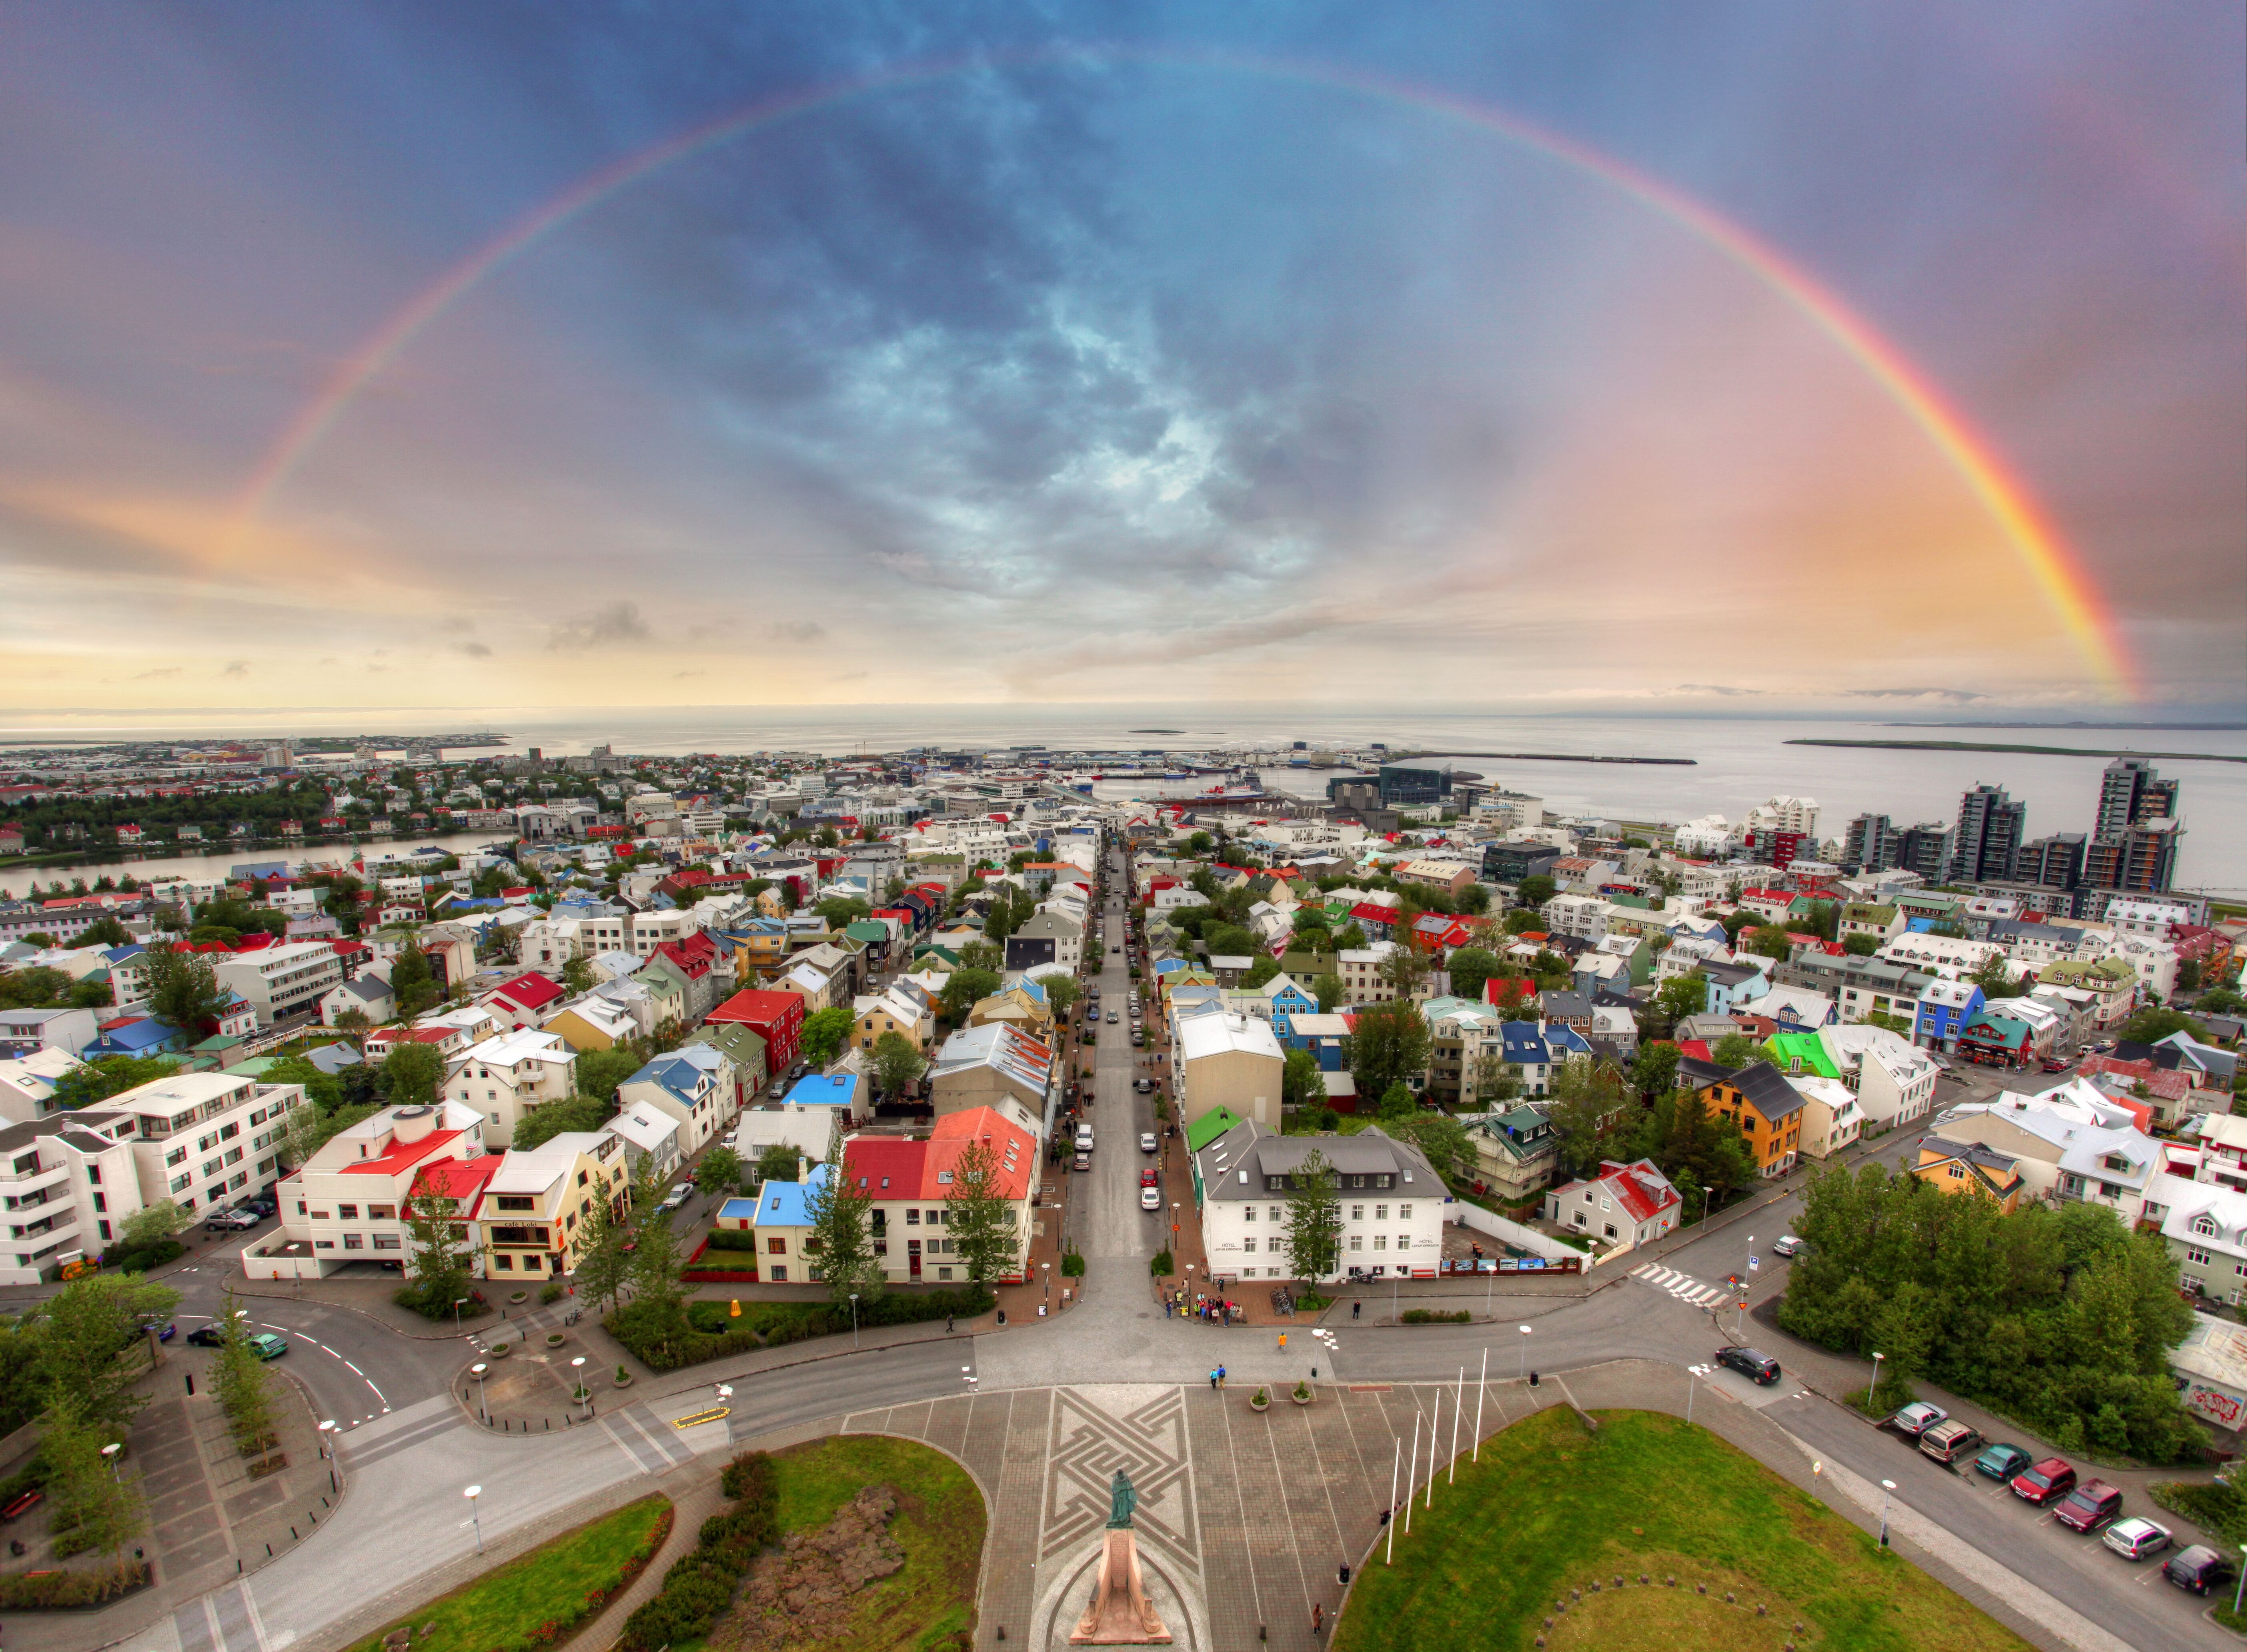 http www.guide to iceland.is explore iceland history & culture